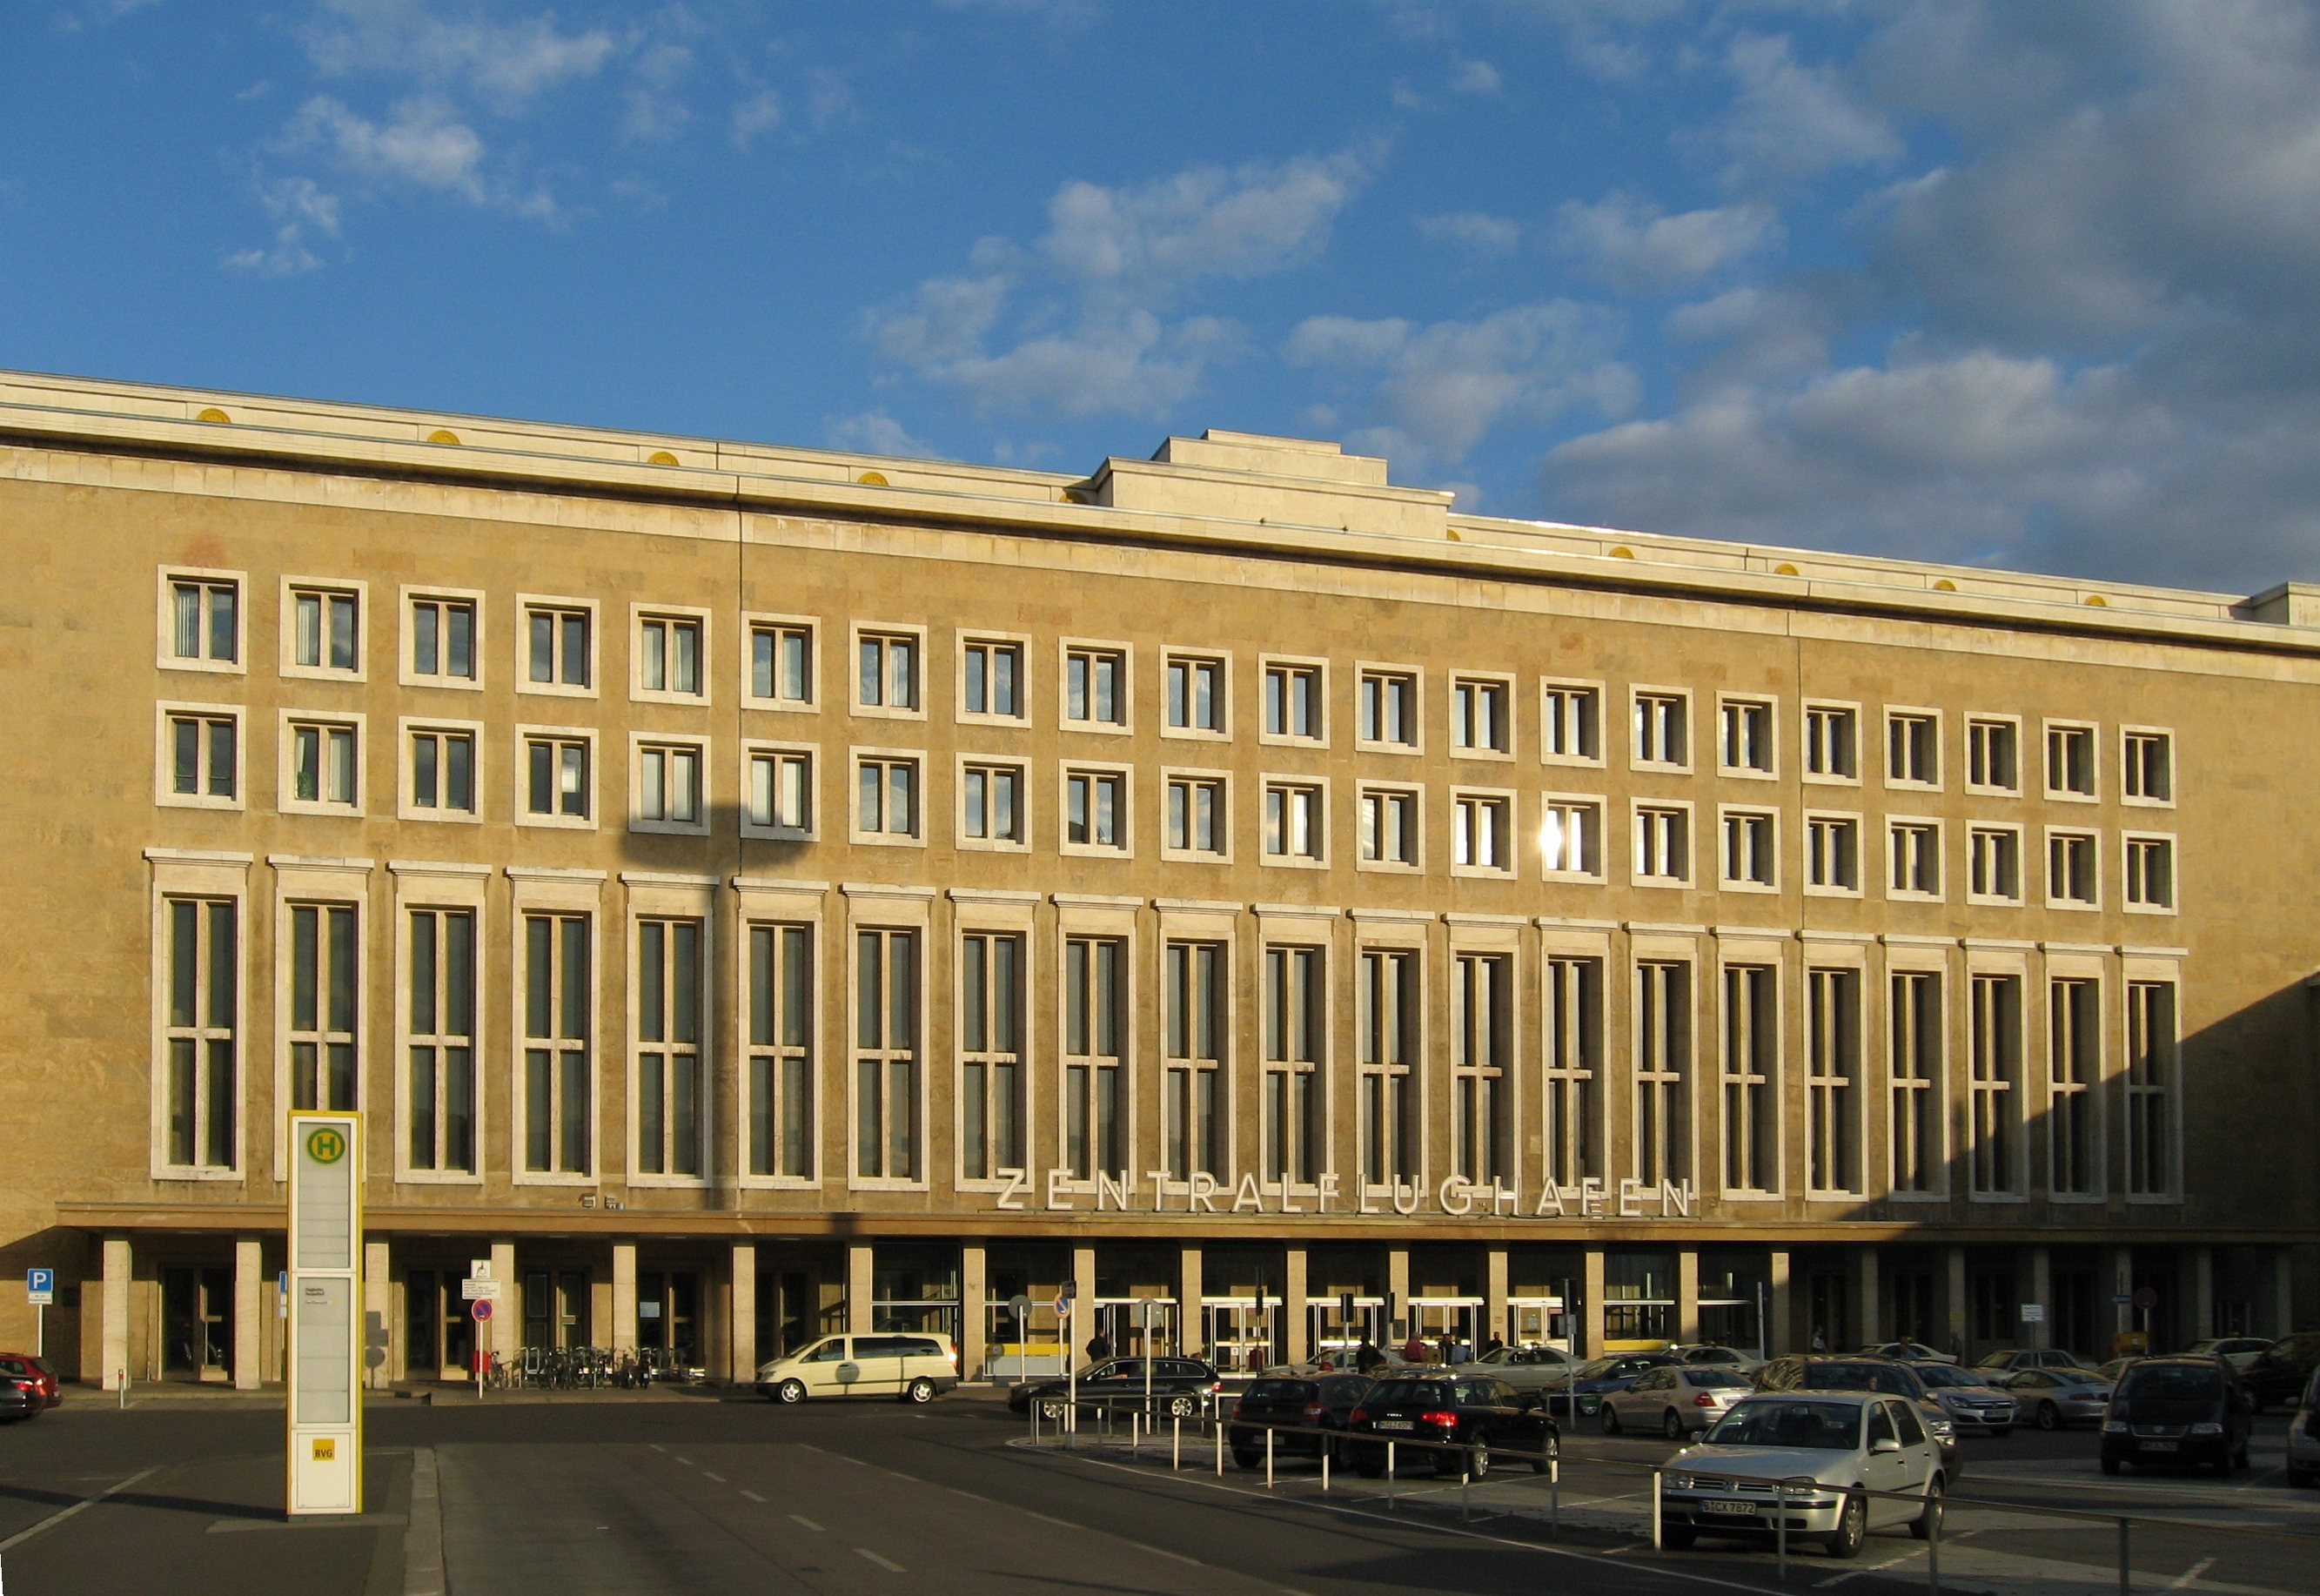 berlin tempelhof airport military wiki fandom powered by wikia. Black Bedroom Furniture Sets. Home Design Ideas